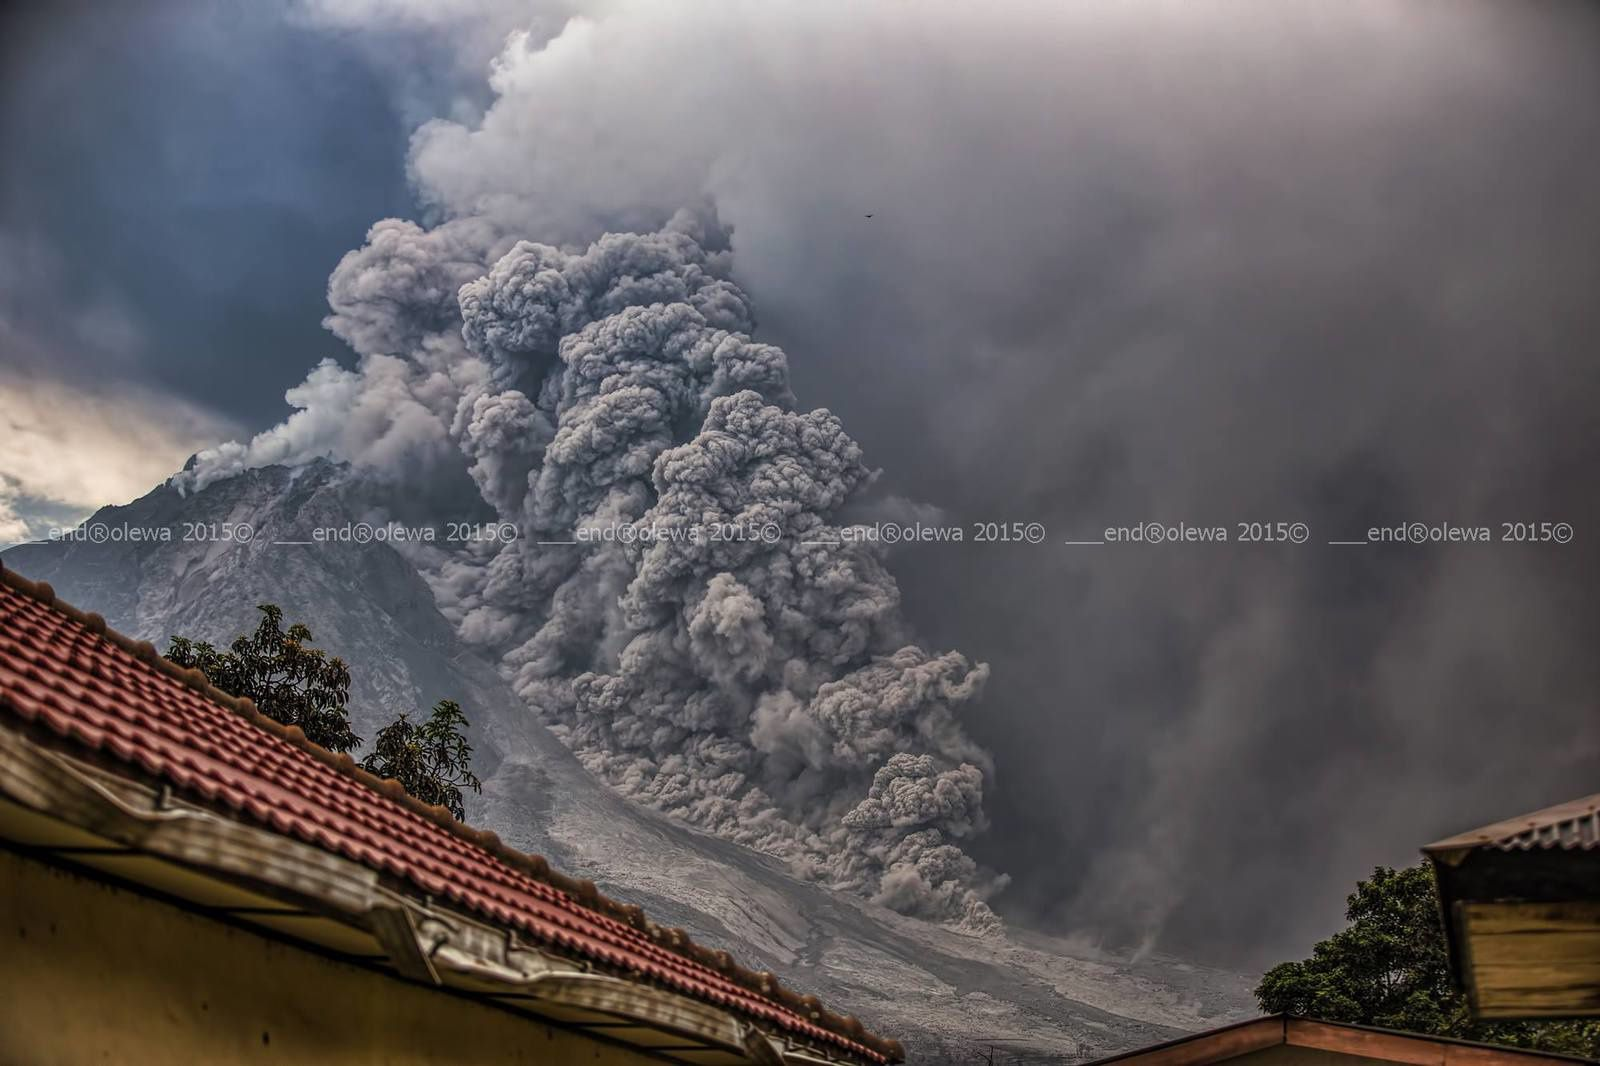 Sinabung 30.07.2015 / 14h39 - 14h40 - photo endrolew@